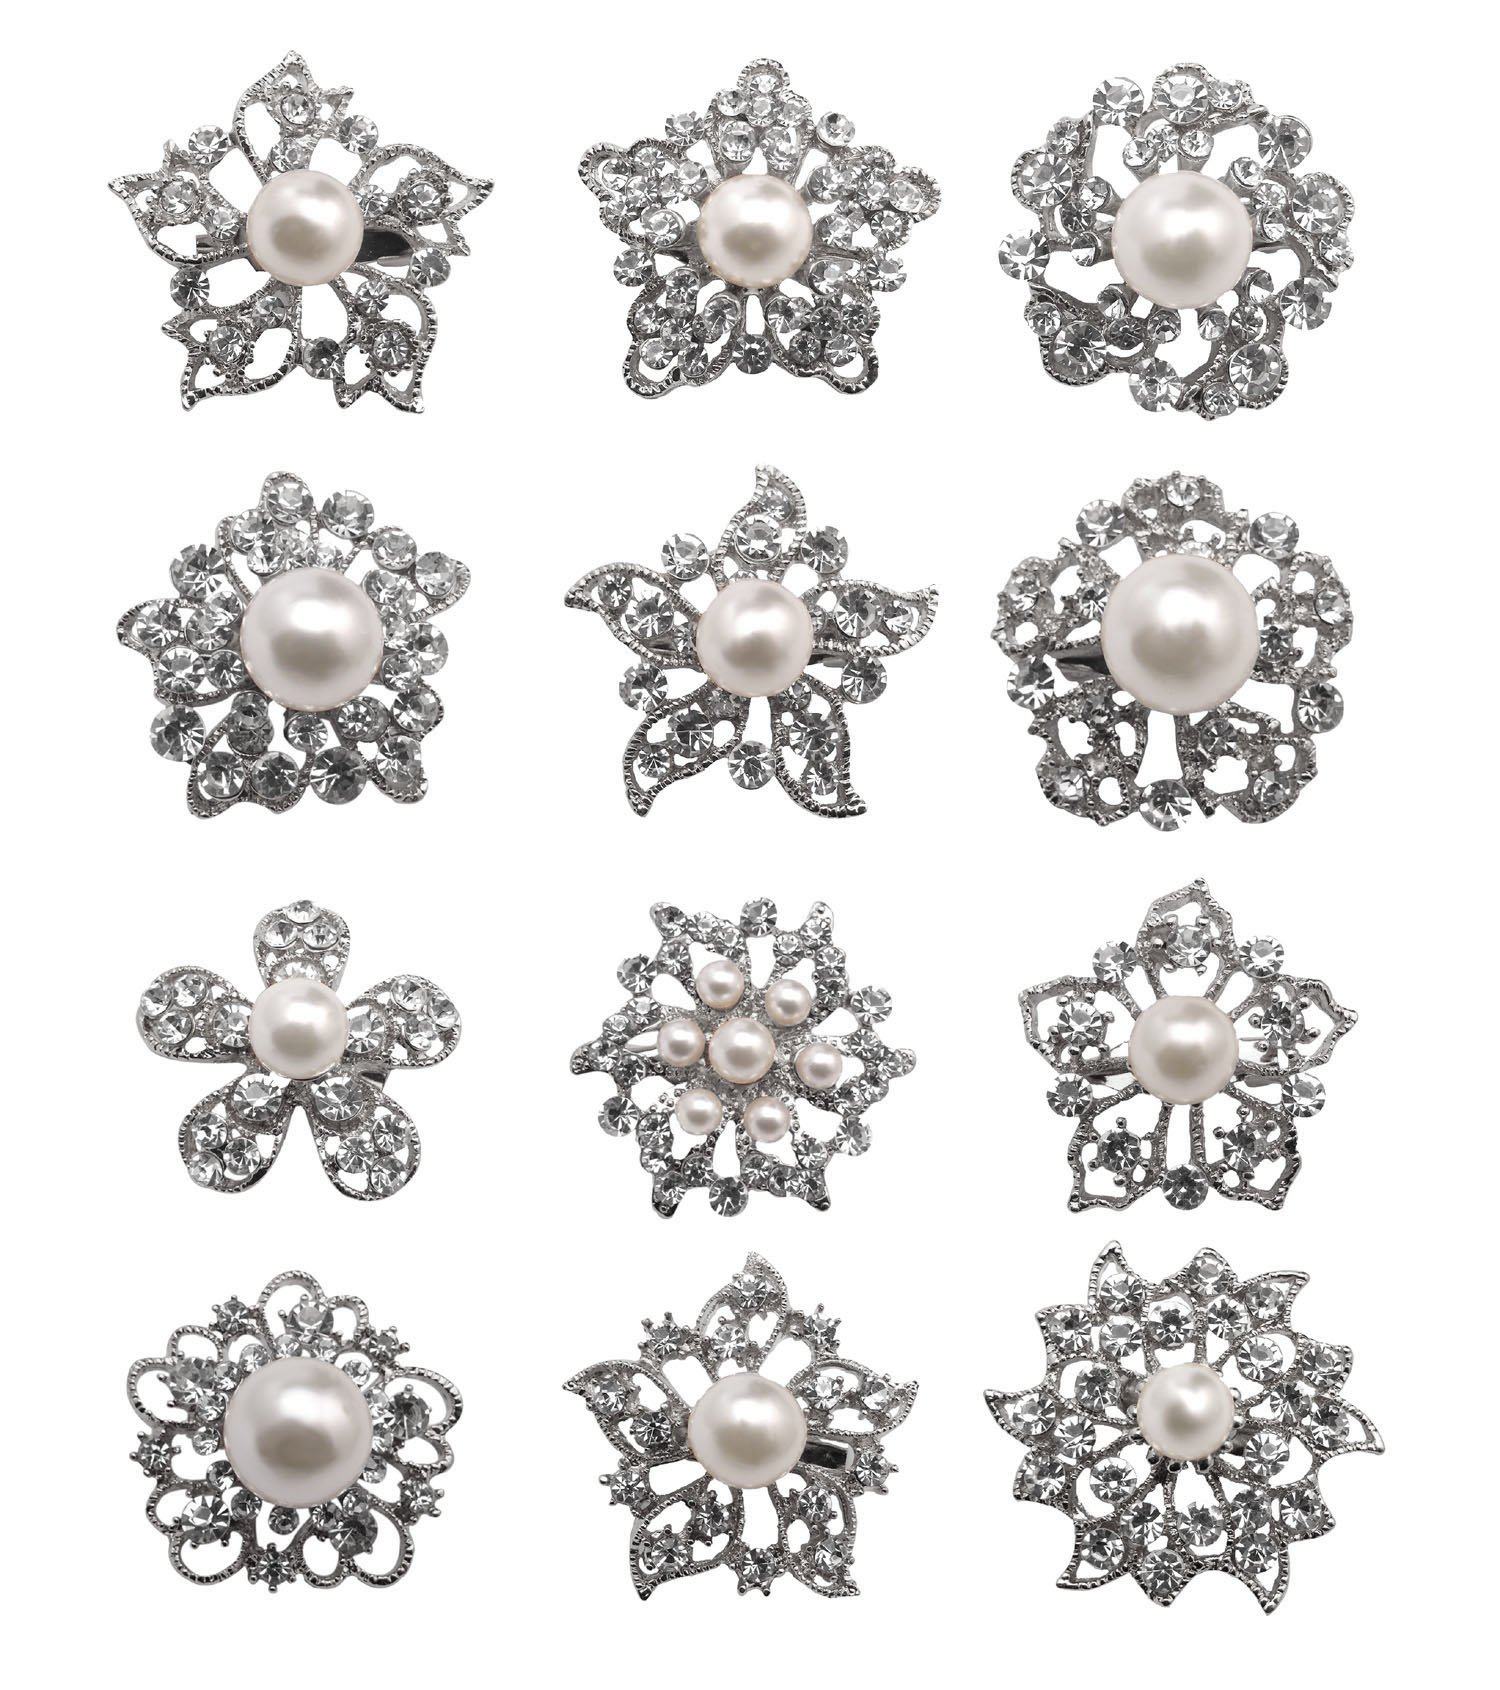 L'vow Mixed Designs Crystal Floriated Brooches Scarves Collar Pin Corsage Bouquet Kit Pack of 12(Silver)